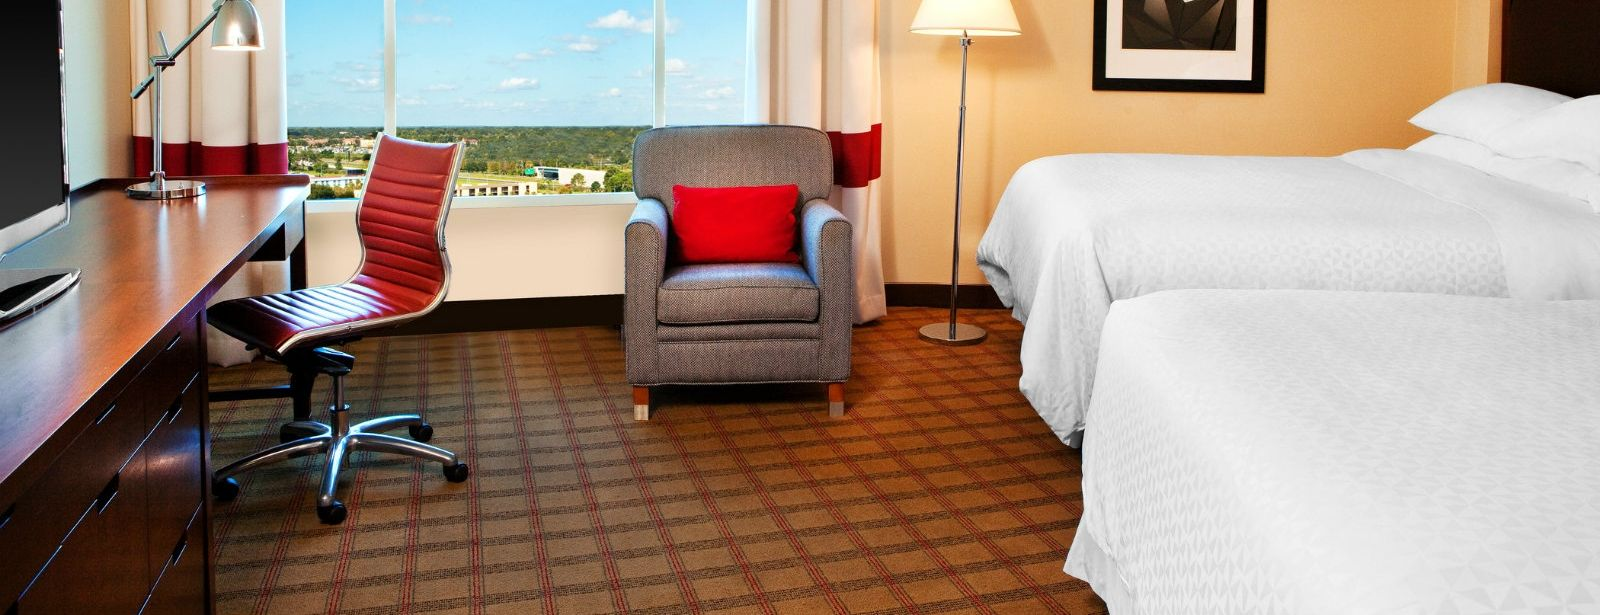 Orlando Accommodations - Deluxe Queen Room